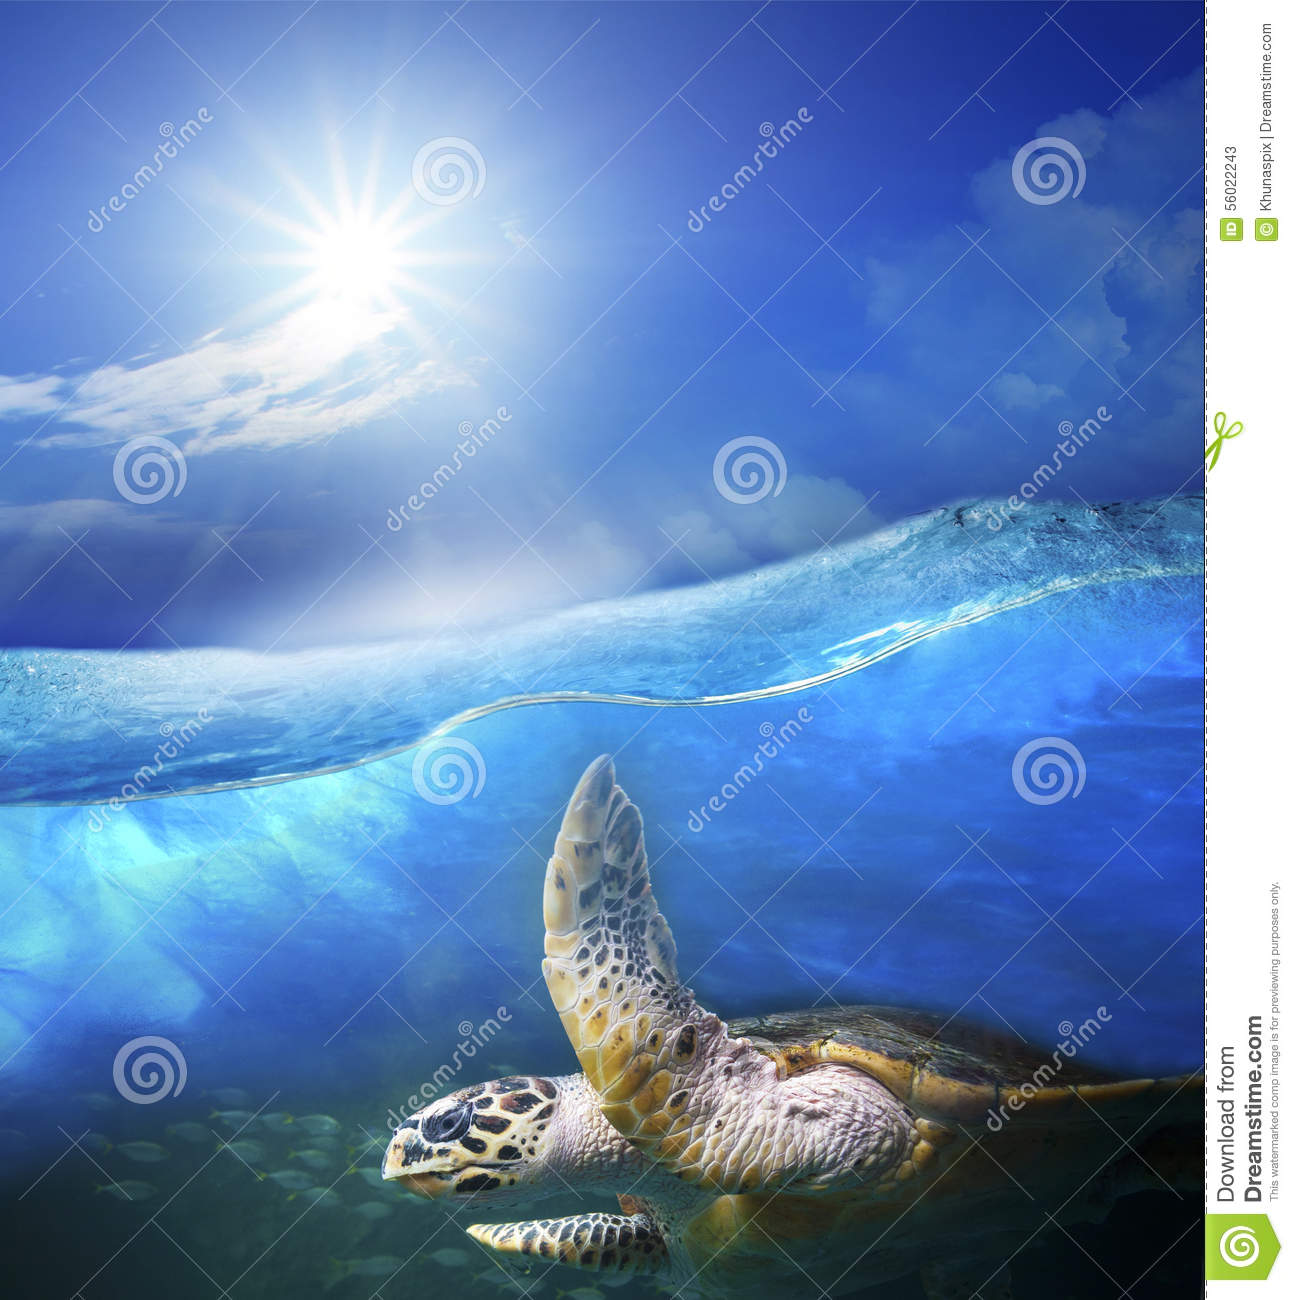 Turtle swimming under clear sea blue water with sun shining on s